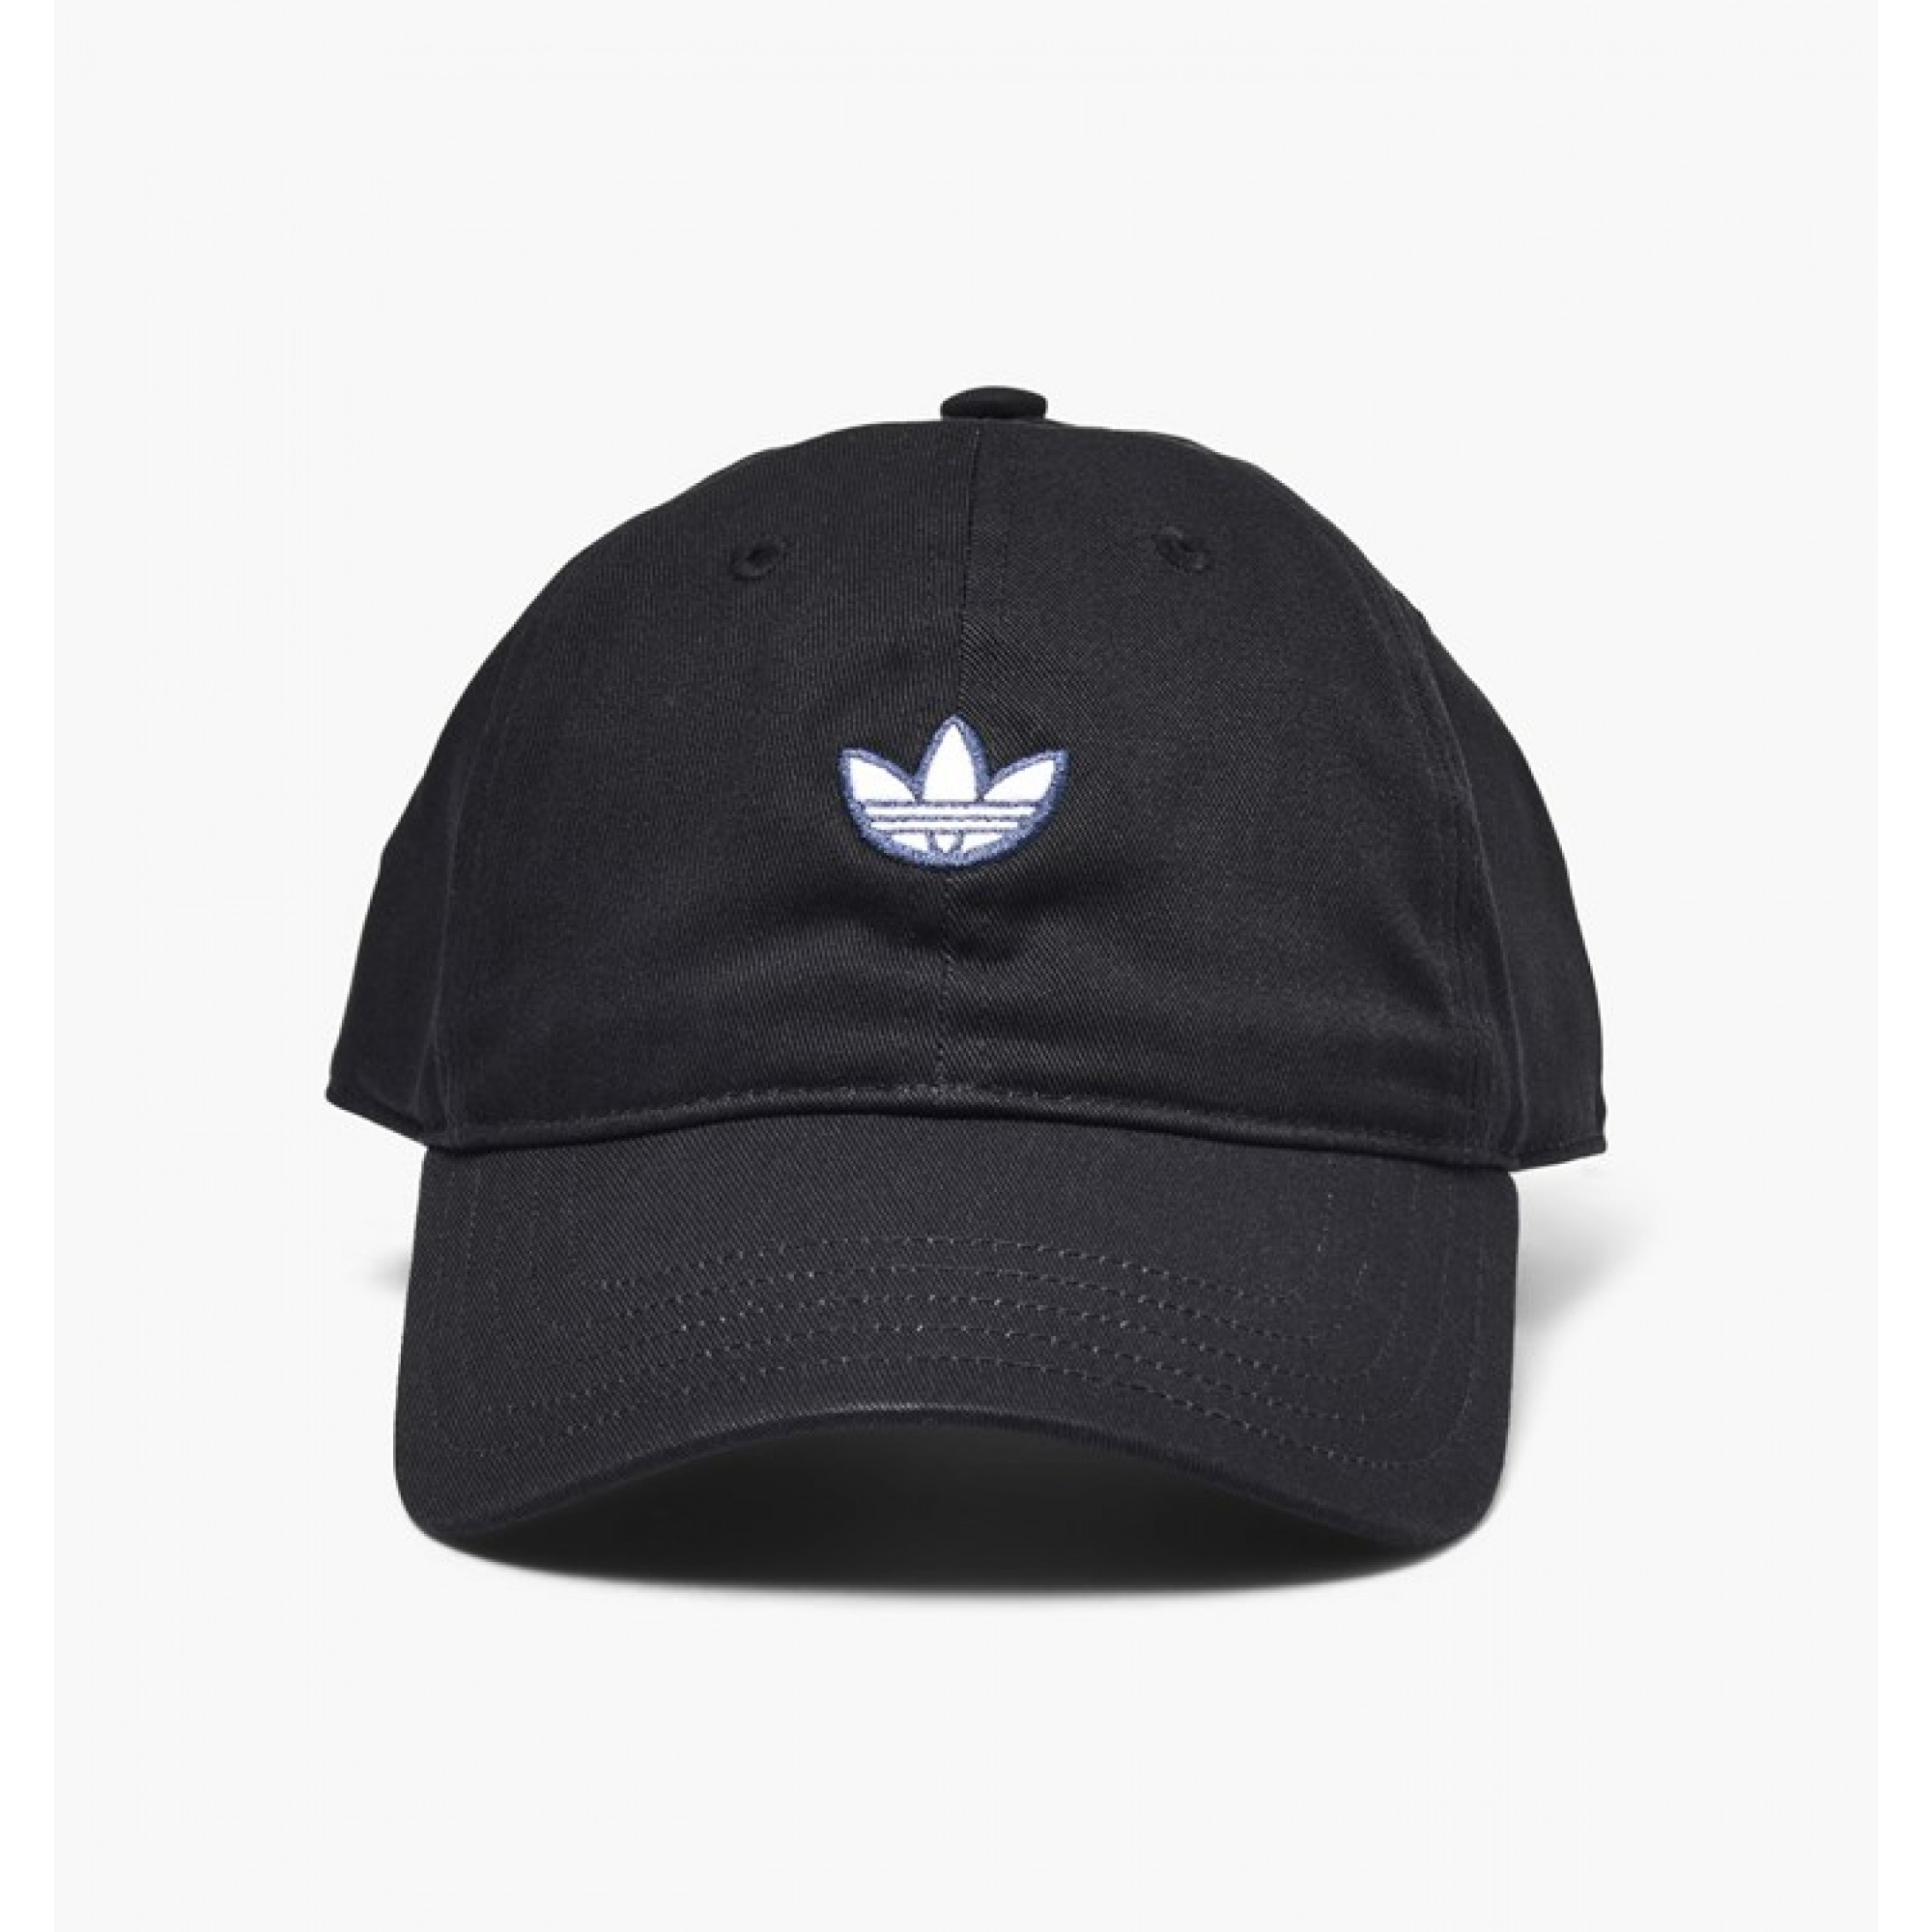 f10e1af6b Men's Adidas Originals Samstag Dad Cap in Black | DV1411